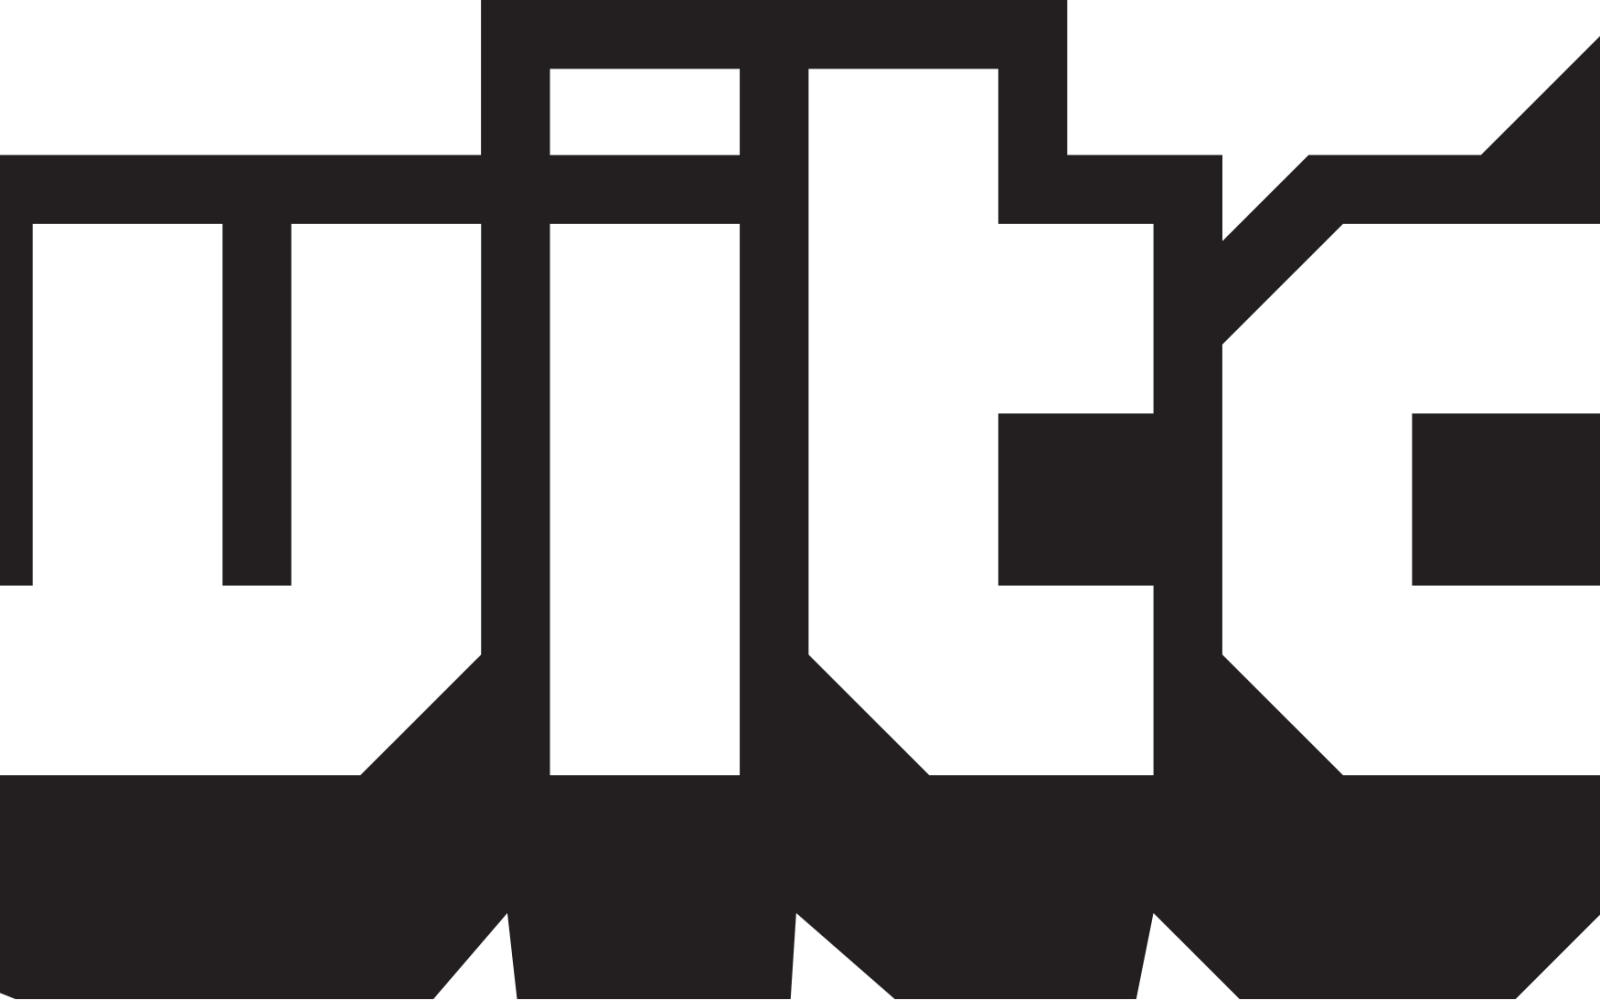 Youtube Reportedly Reaches Deal To Acquire Twitch Game